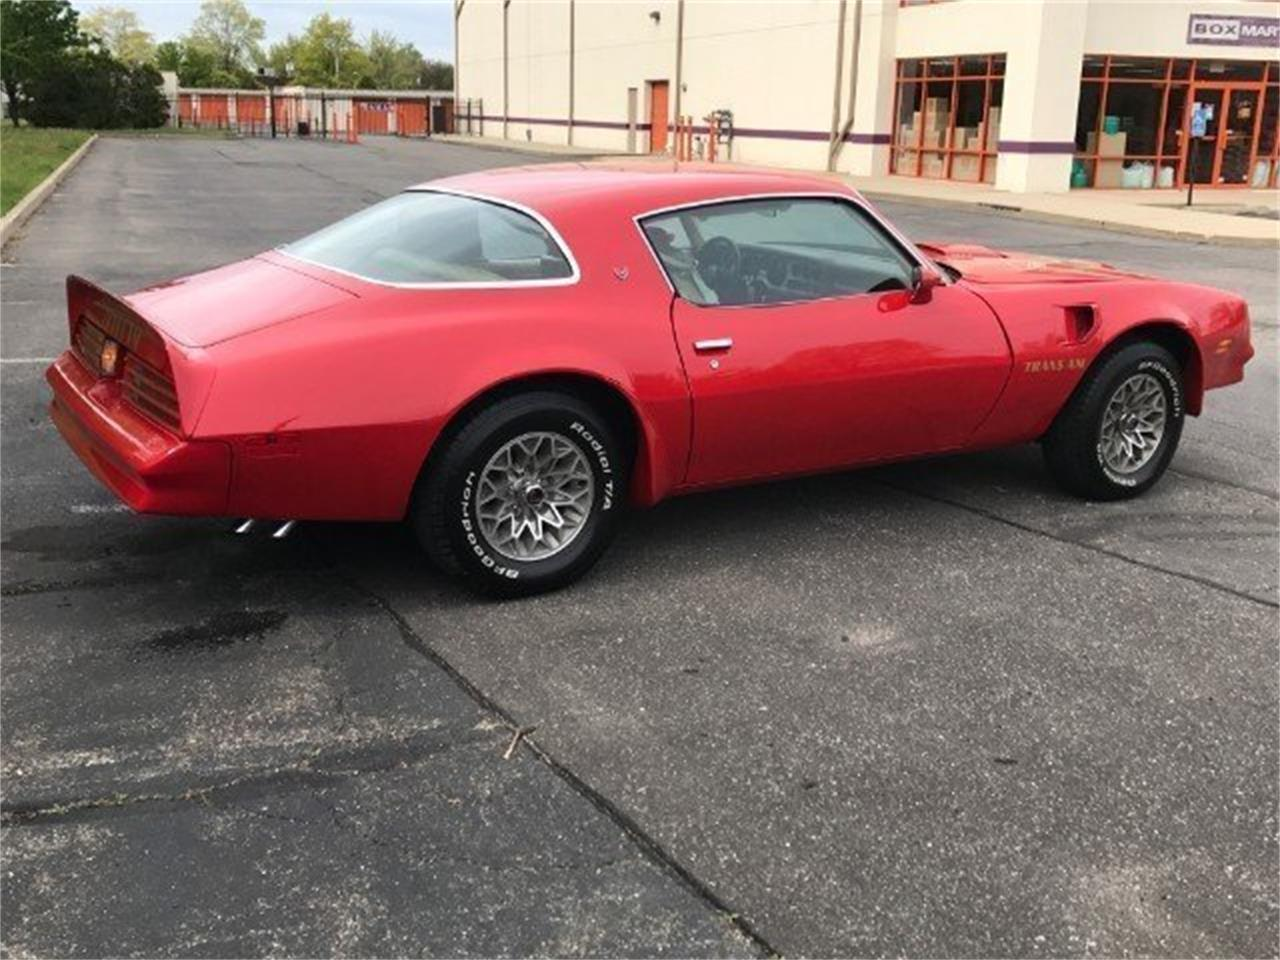 Large Picture of '77 Pontiac Firebird Trans Am located in Greensboro North Carolina Auction Vehicle - MKVE